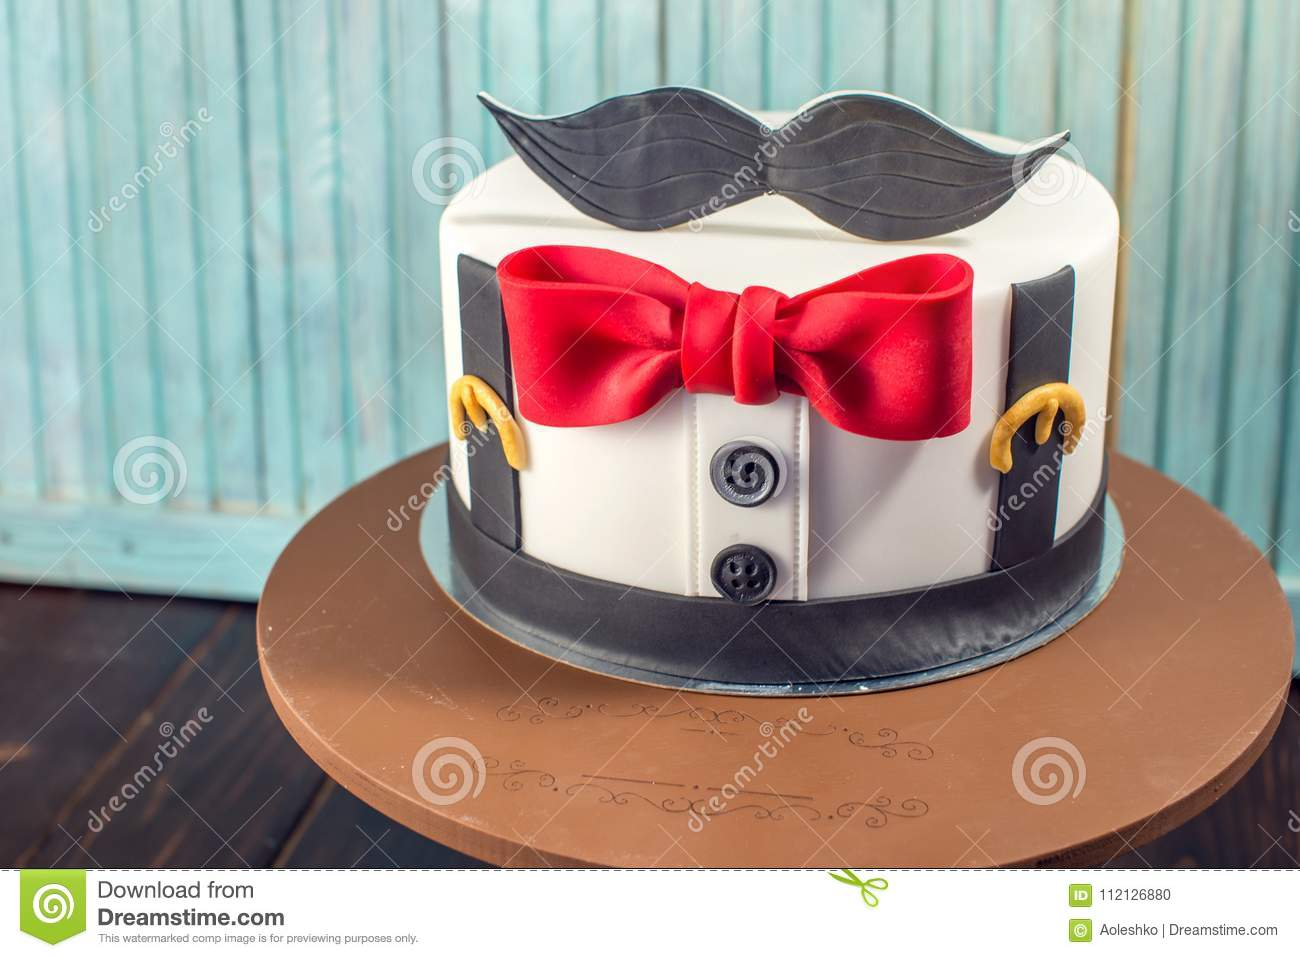 Fine Beautiful Cake For Men Decorated In The Form Of A Suit With A Bow Funny Birthday Cards Online Hendilapandamsfinfo